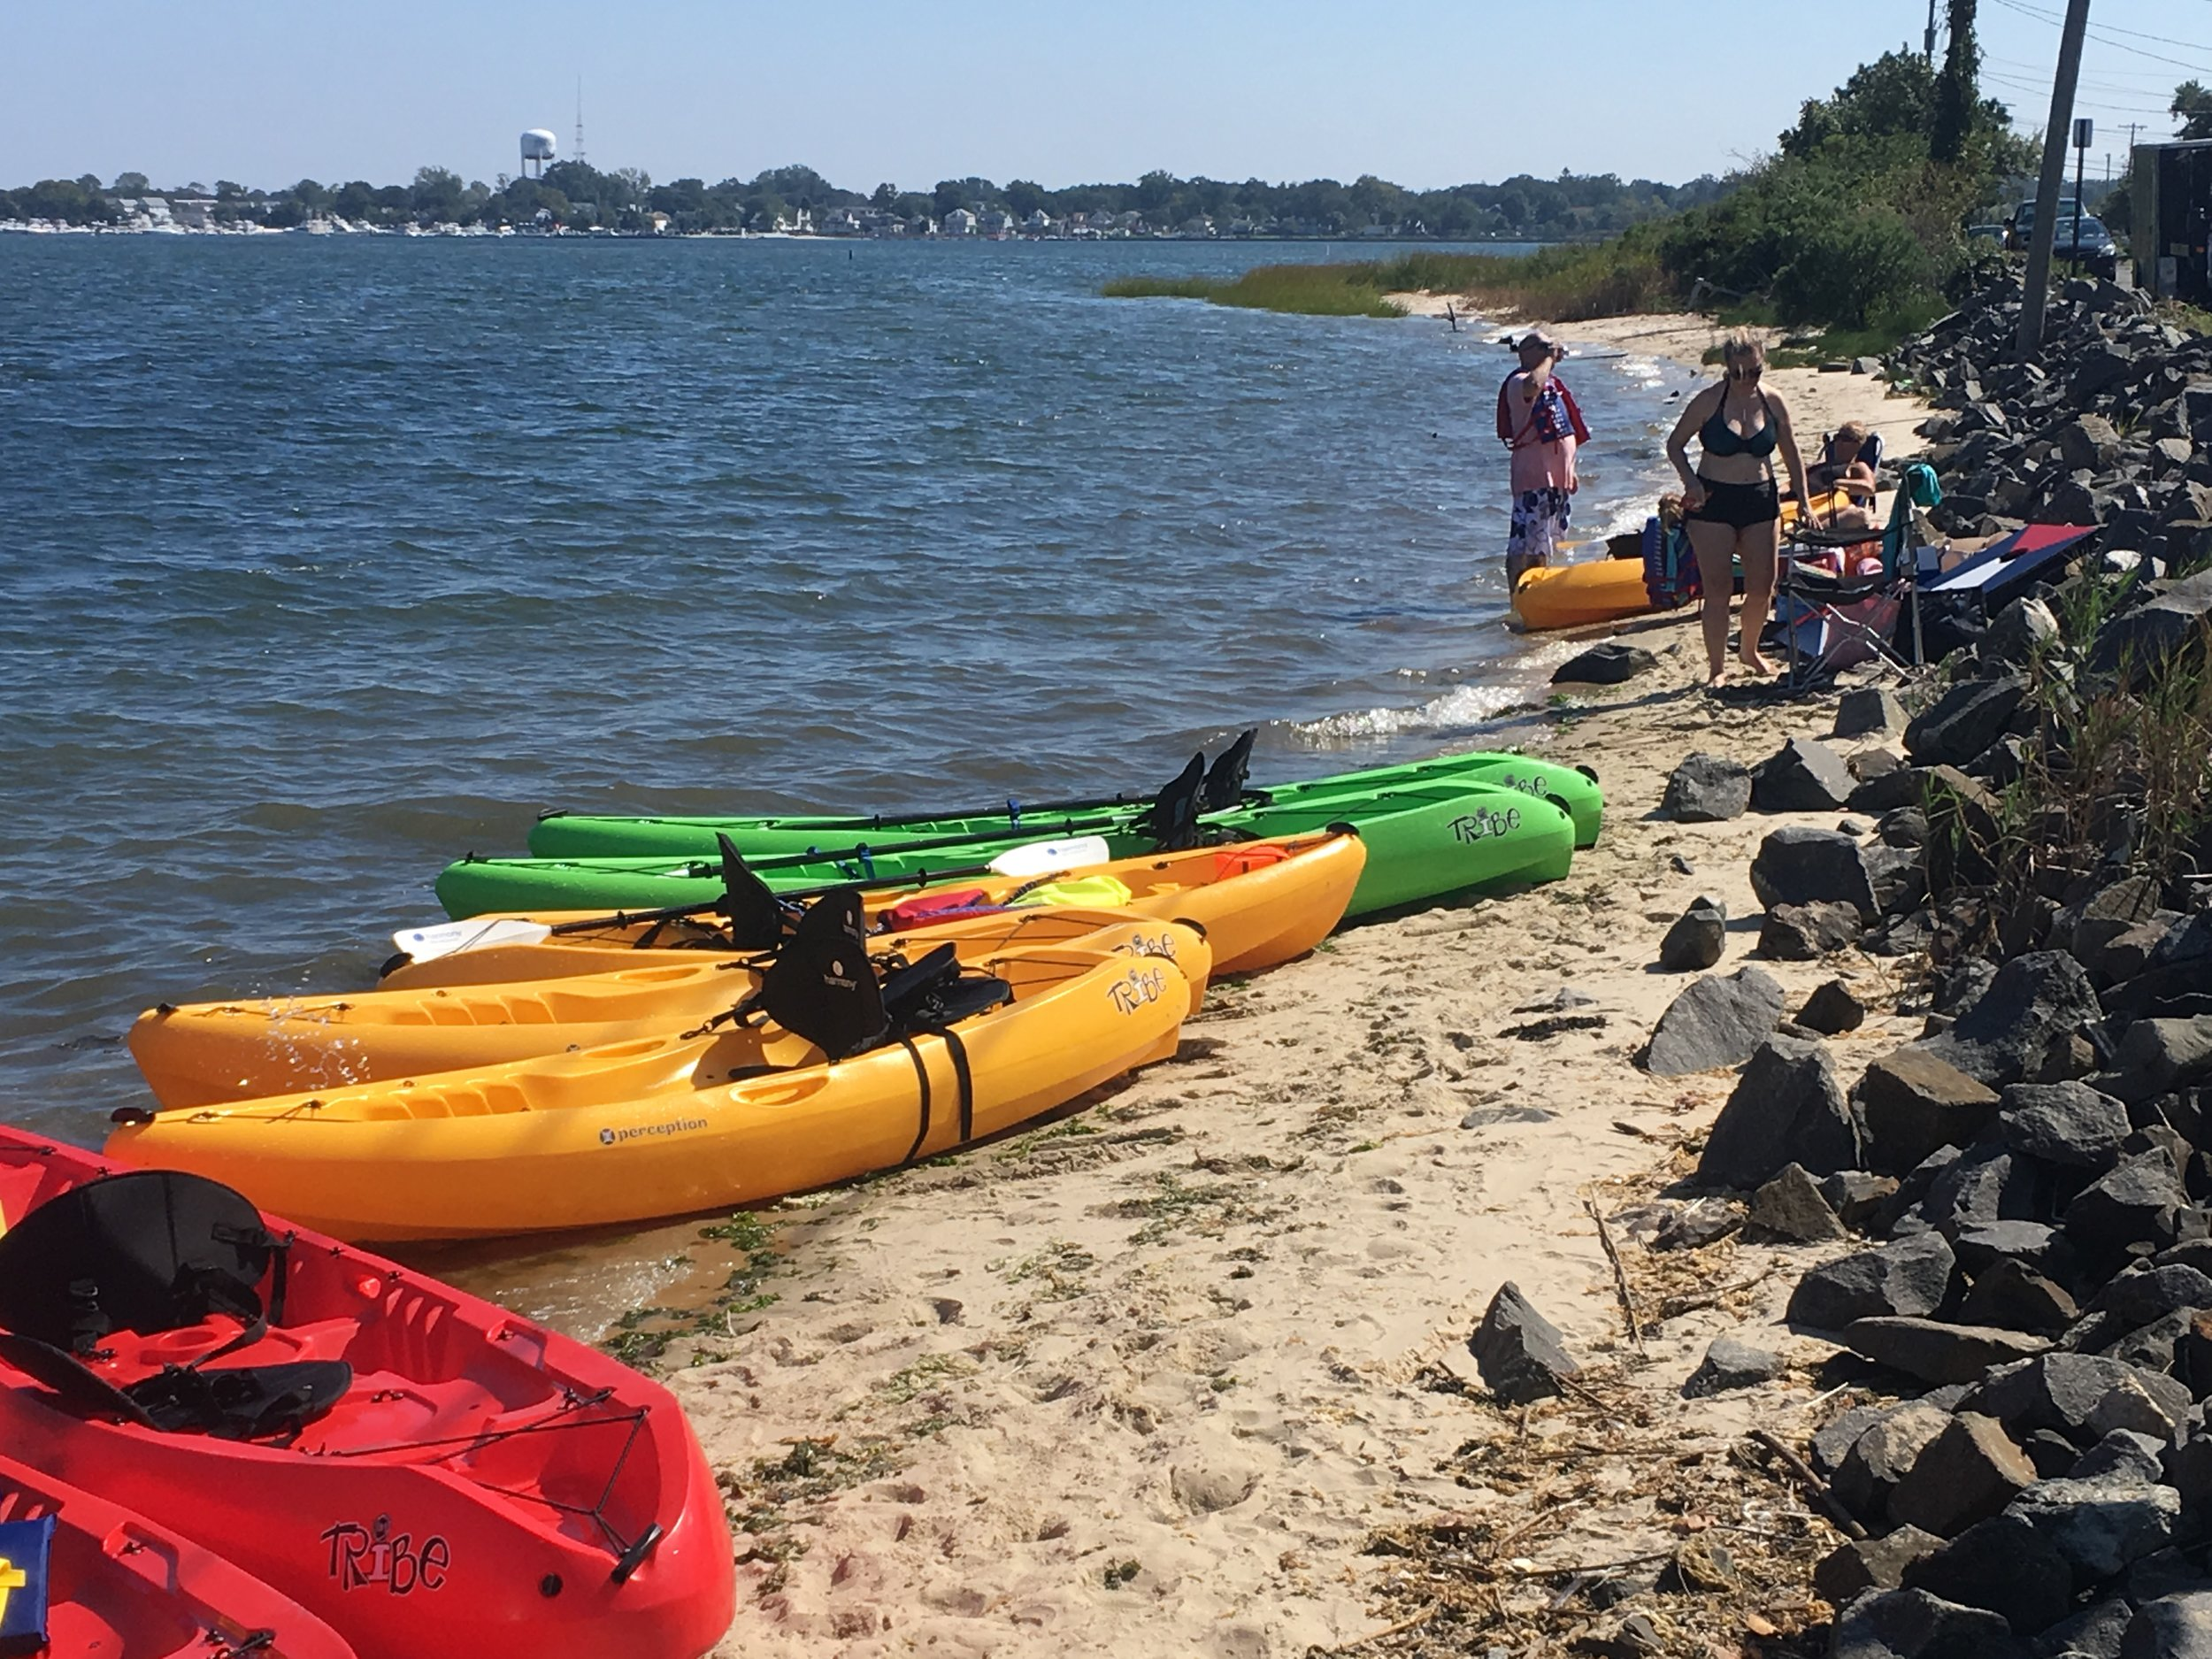 Essential Eligibility Criteria - We follow the guidelines set forth by American Canoe Association for participation in any of the services we provide. Please take a look at the Essential Eligibility Criteria (EEC) and our Terms of Service.